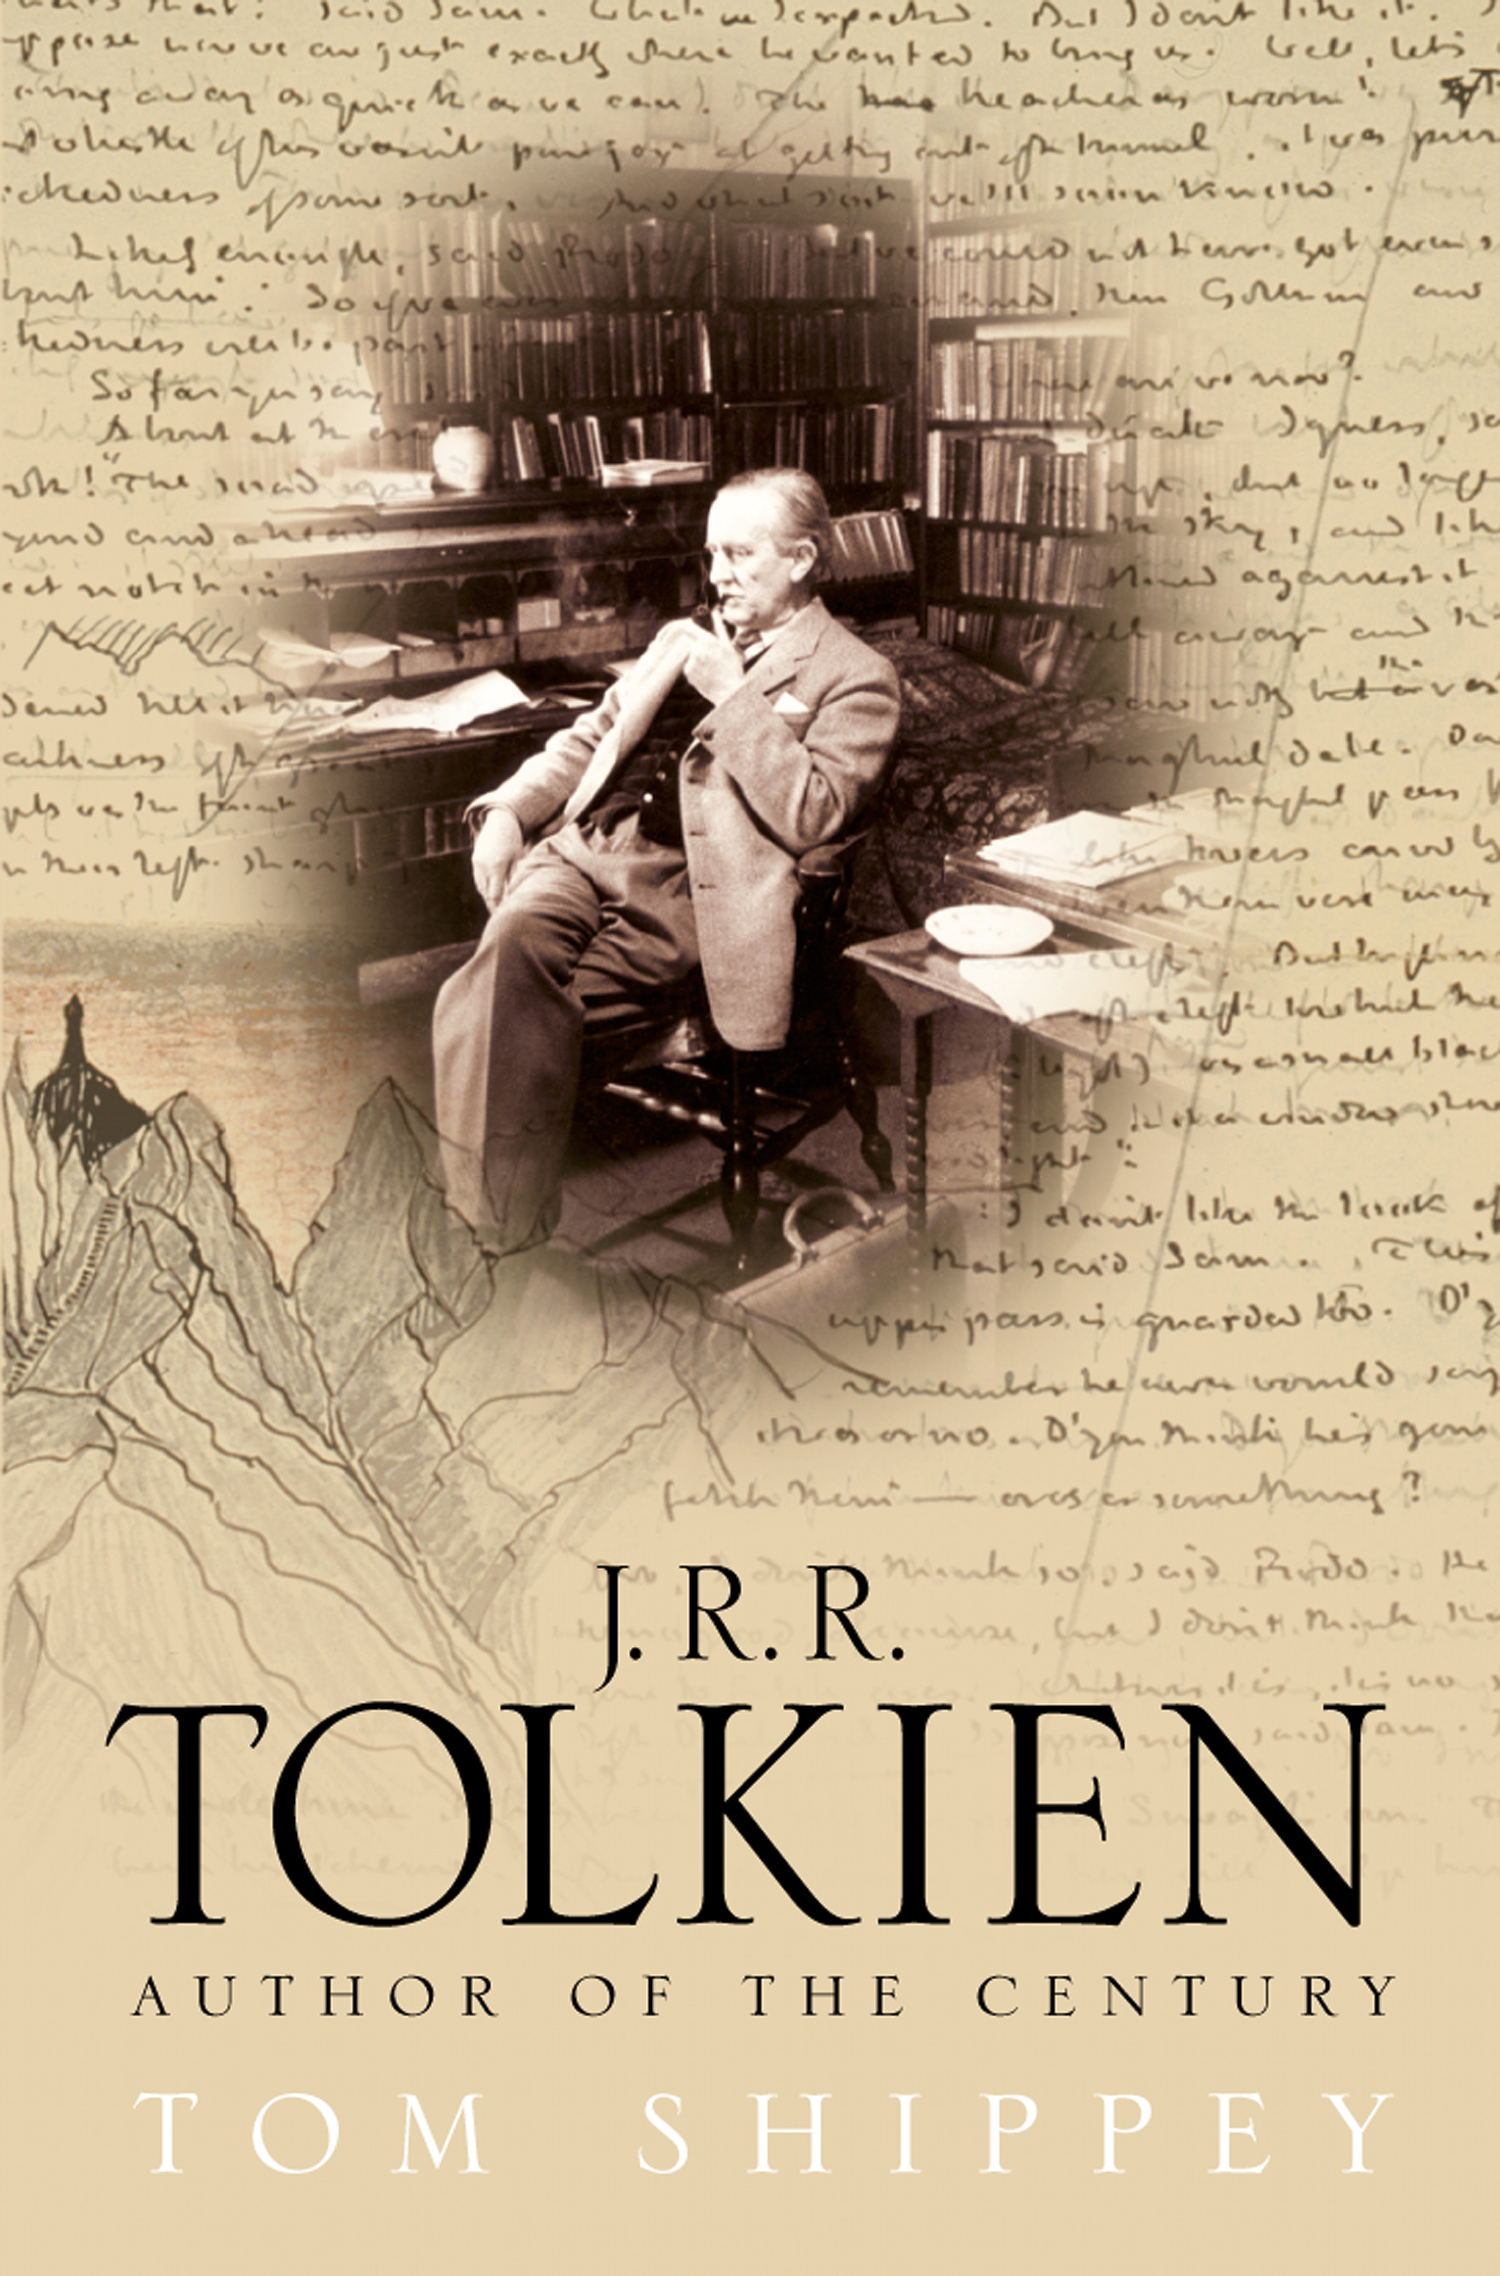 J. R. R. Tolkien: Author of the Century